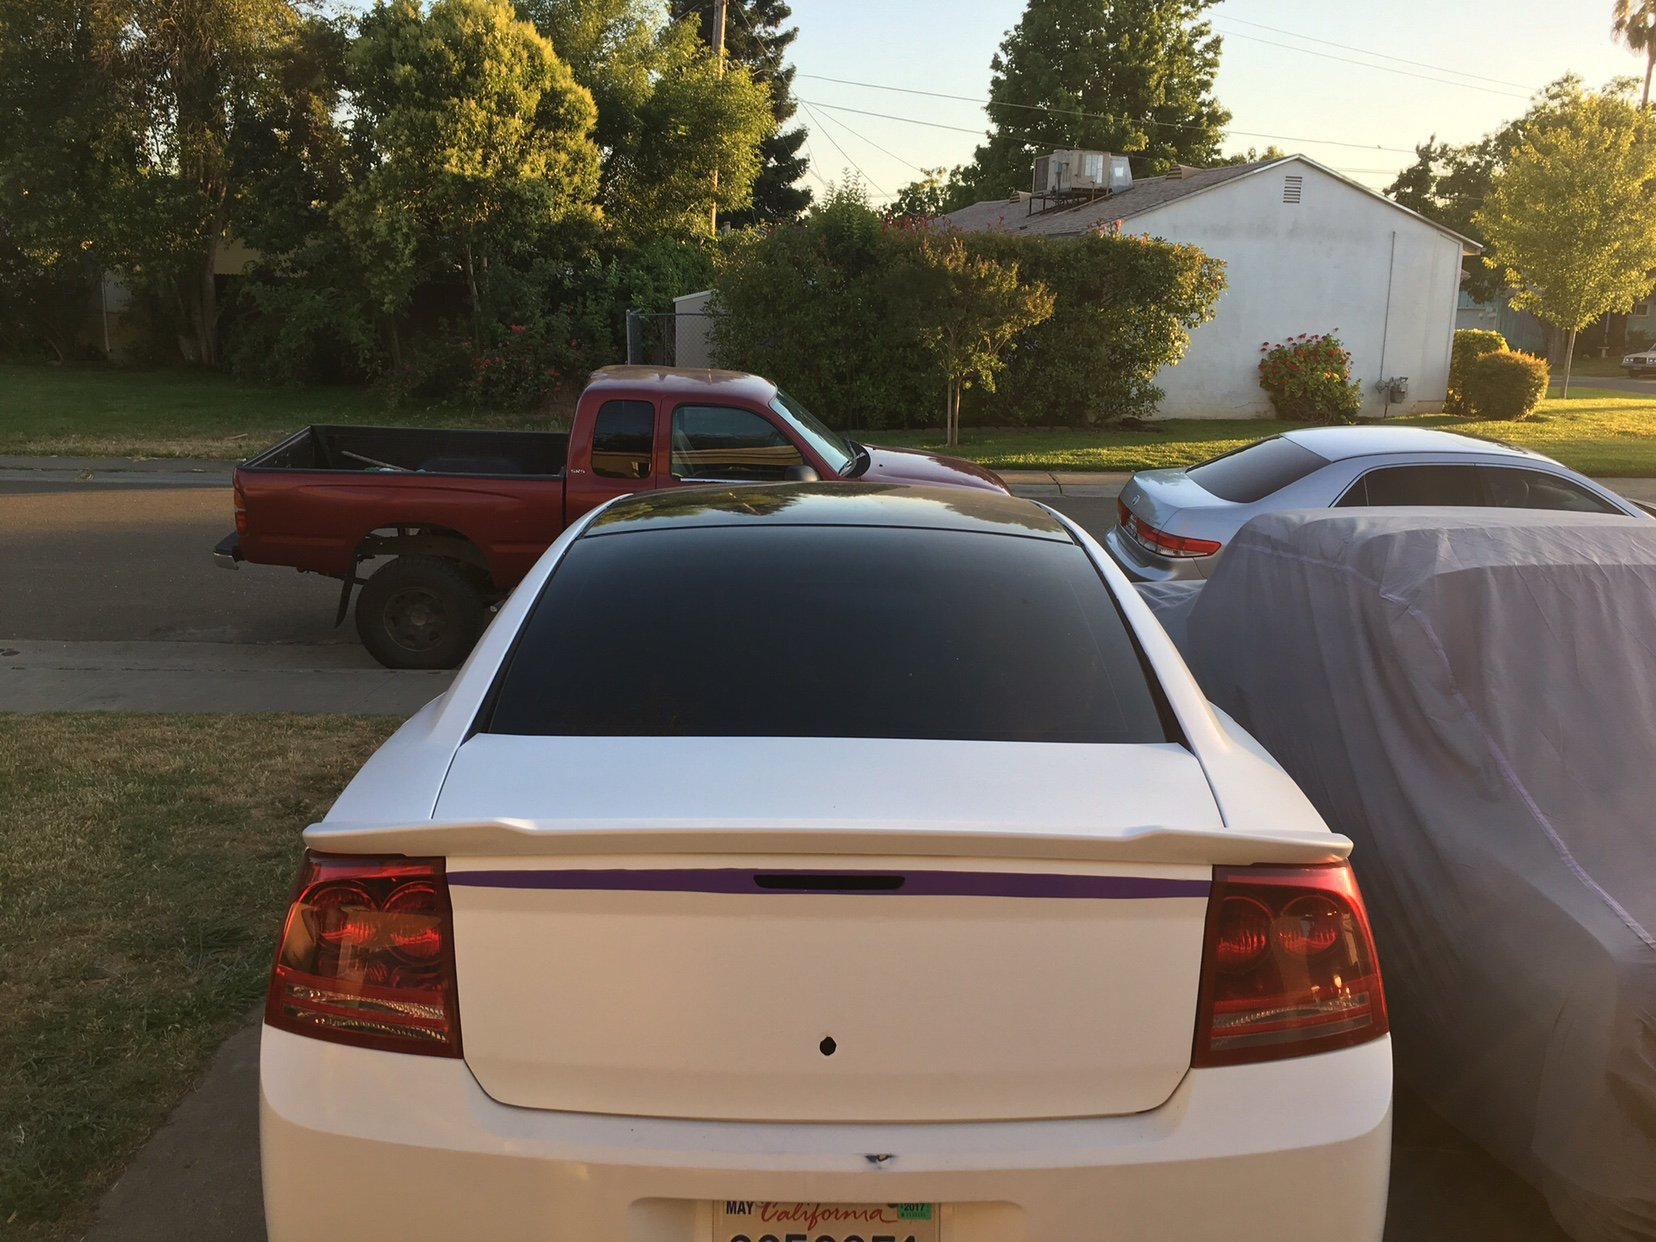 PRIMERED FACTORY STYLE HELLCAT SPOILER FITS 2011-2018 DODGE CHARGER